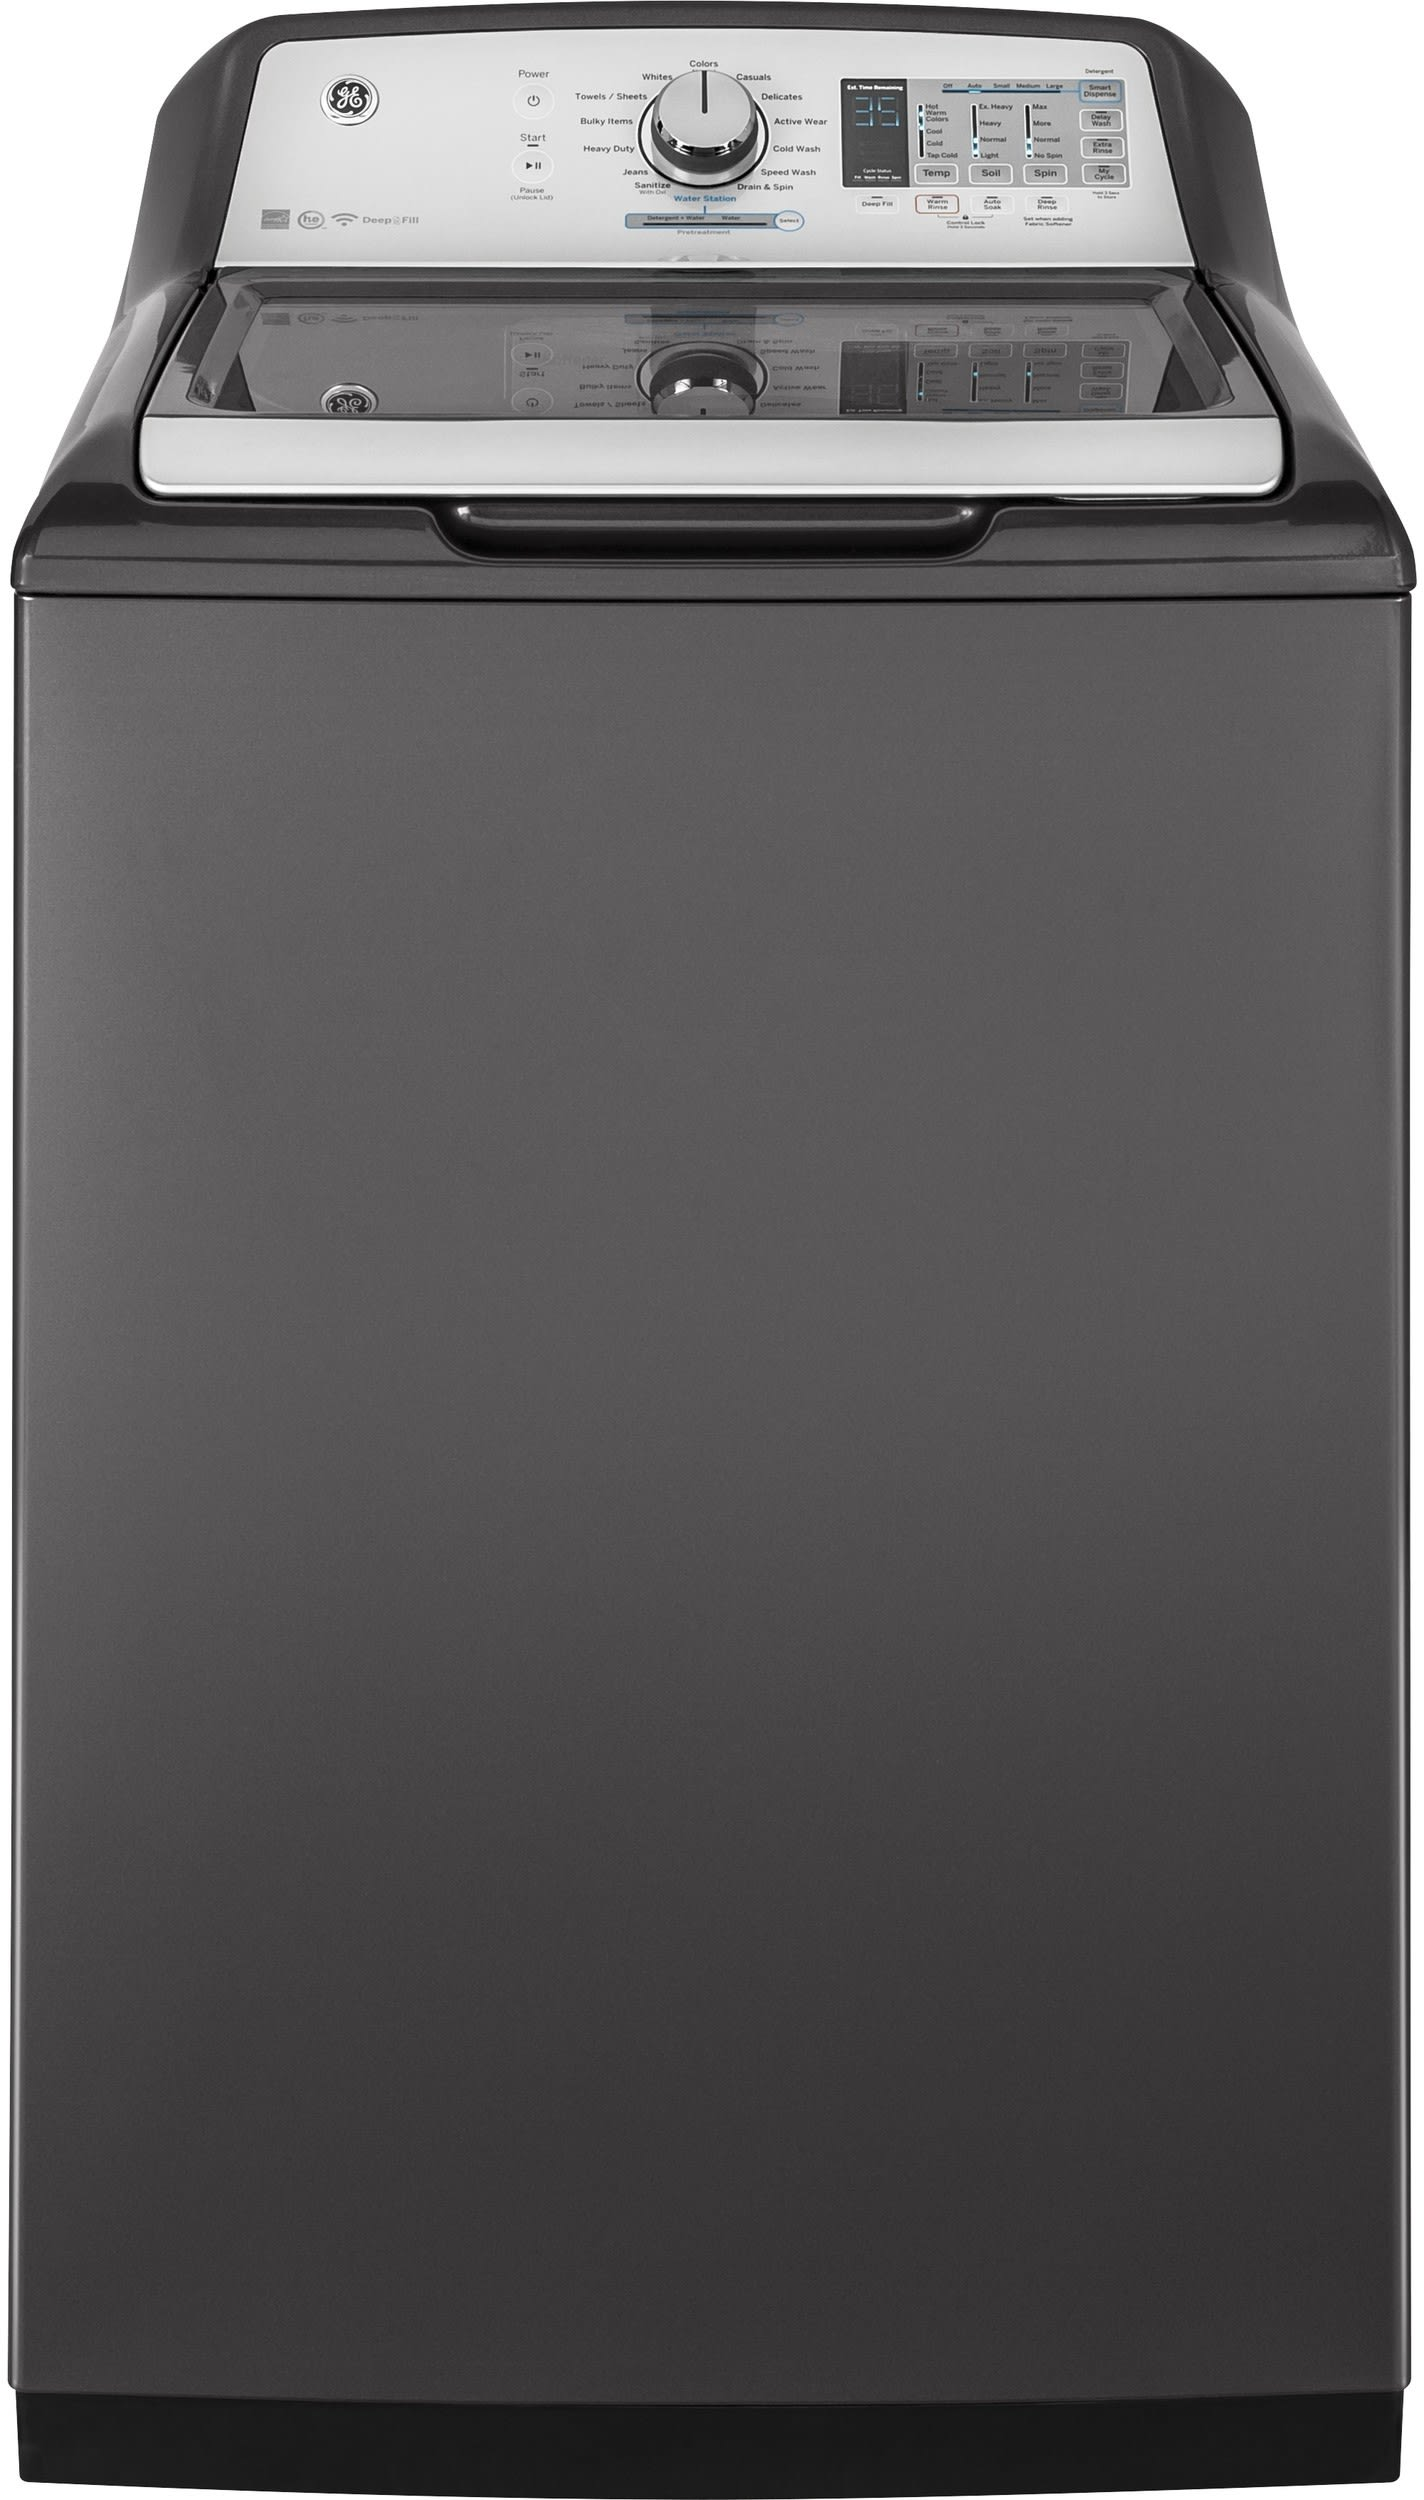 Ge Gtd75ecpldg 27 Inch Smart Electric Dryer With Wifi